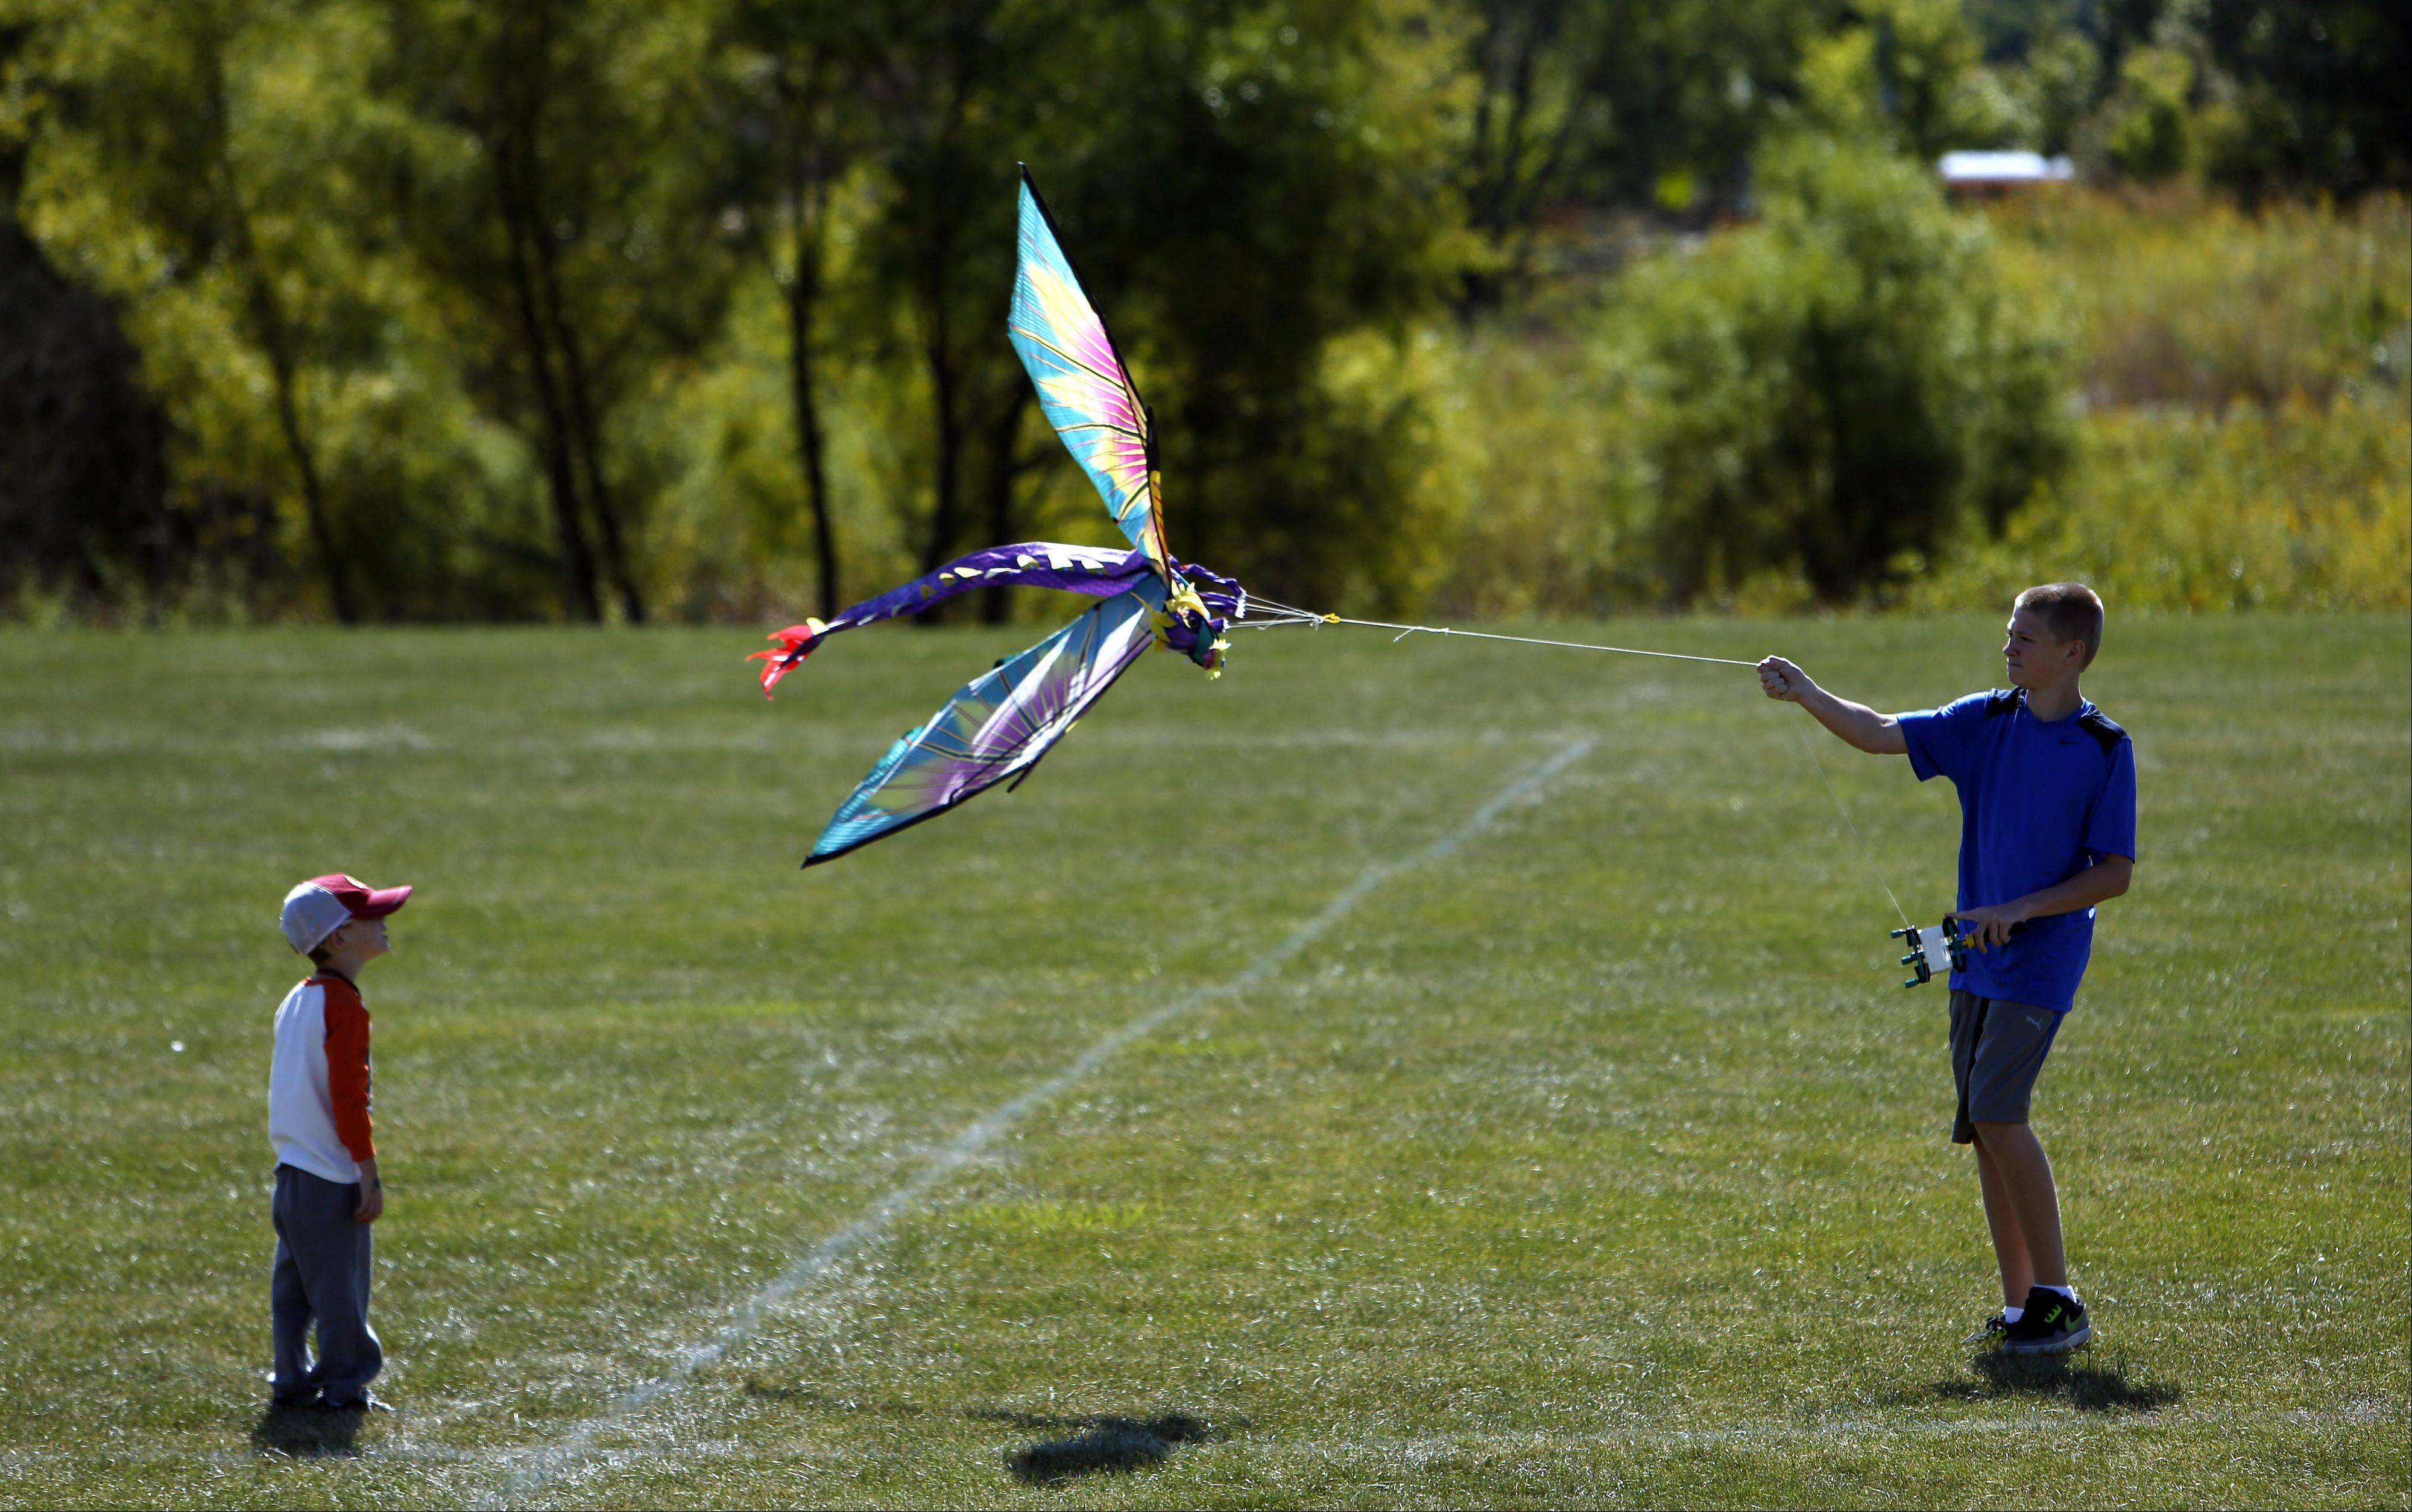 With his younger brother Mason Wynn, 4, looking on and offering support thirteen-year-old Brandon Jenkins, both of Geneva, try to get their dragonfly kite airborne during the third annual Geneva Park District Kite Festival at Peck Farm Park in Geneva Saturday.